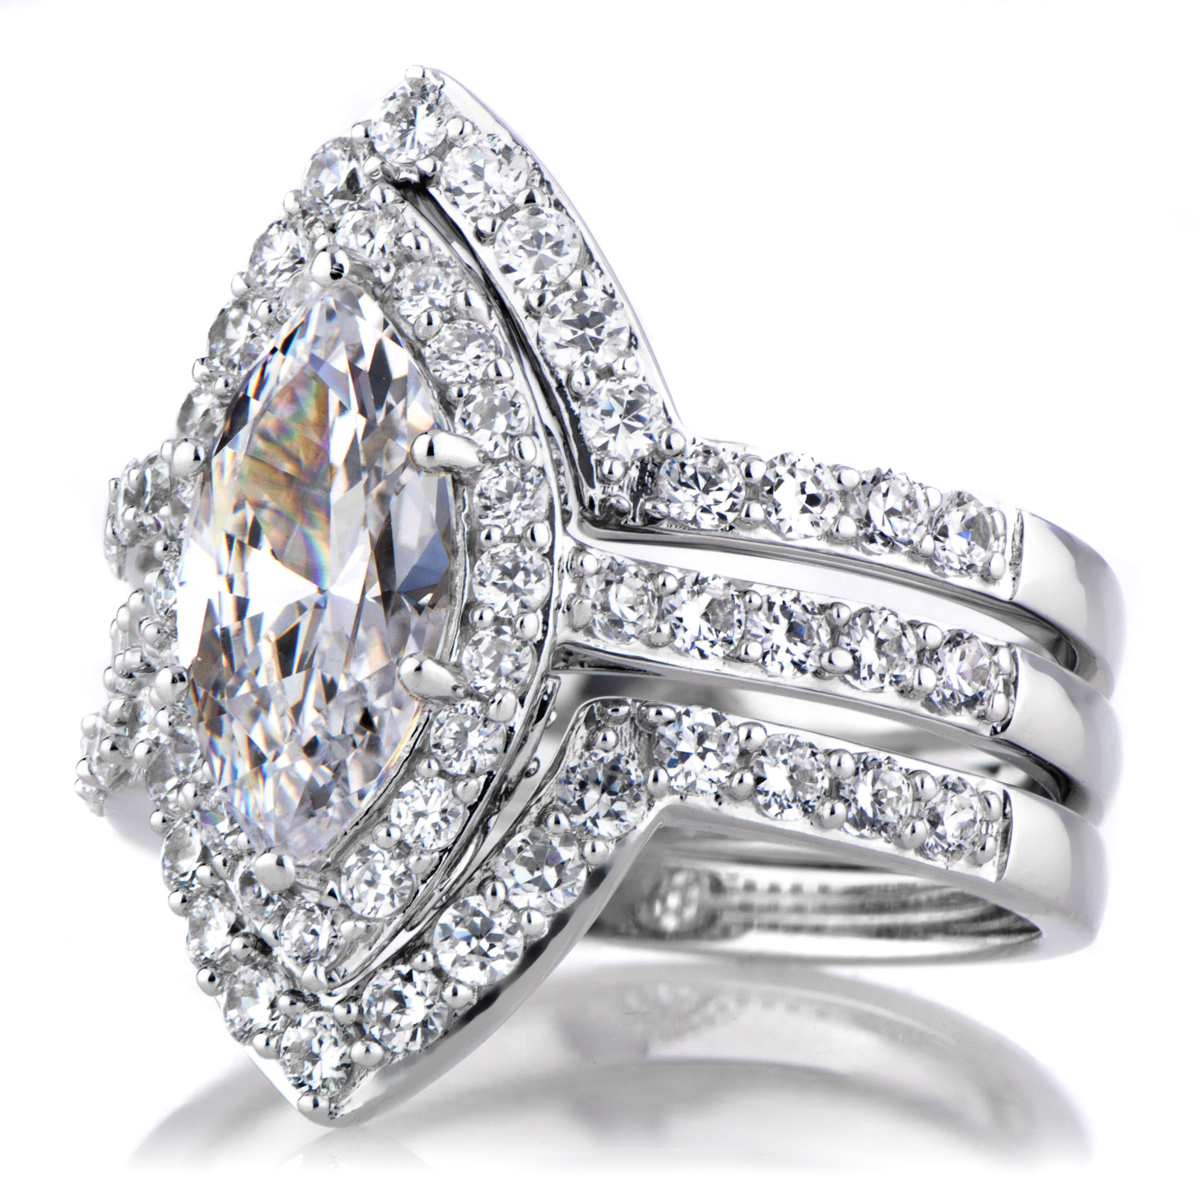 Wedding Rings Pictures Marquise Wedding Ring Sets